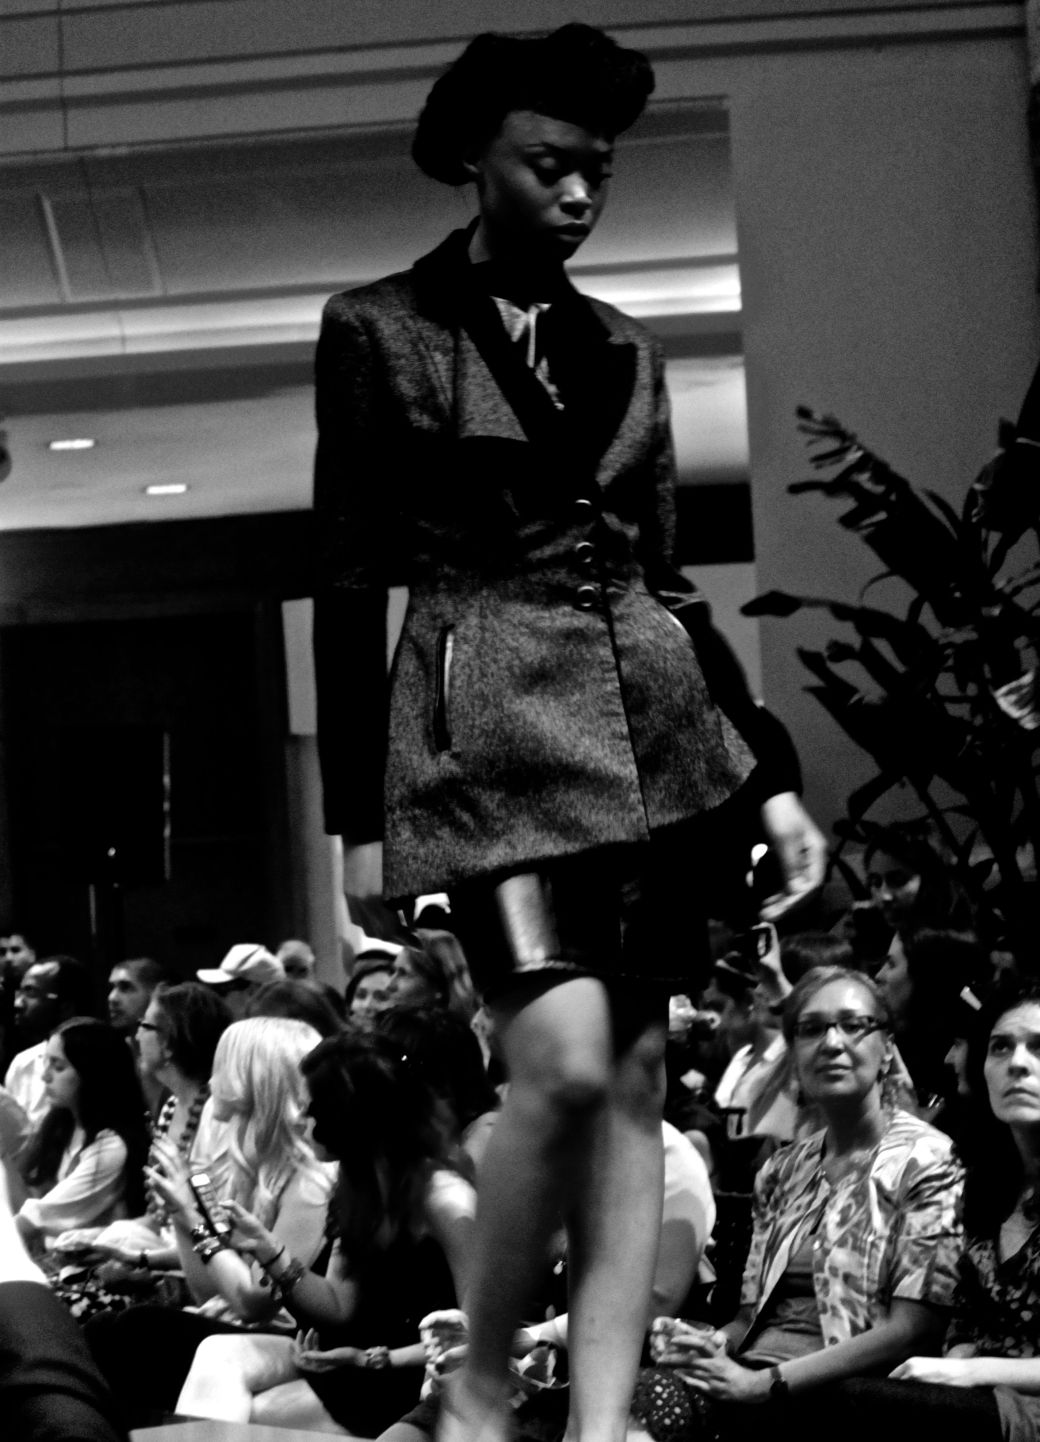 boston fashion week october 2 woman in black suit